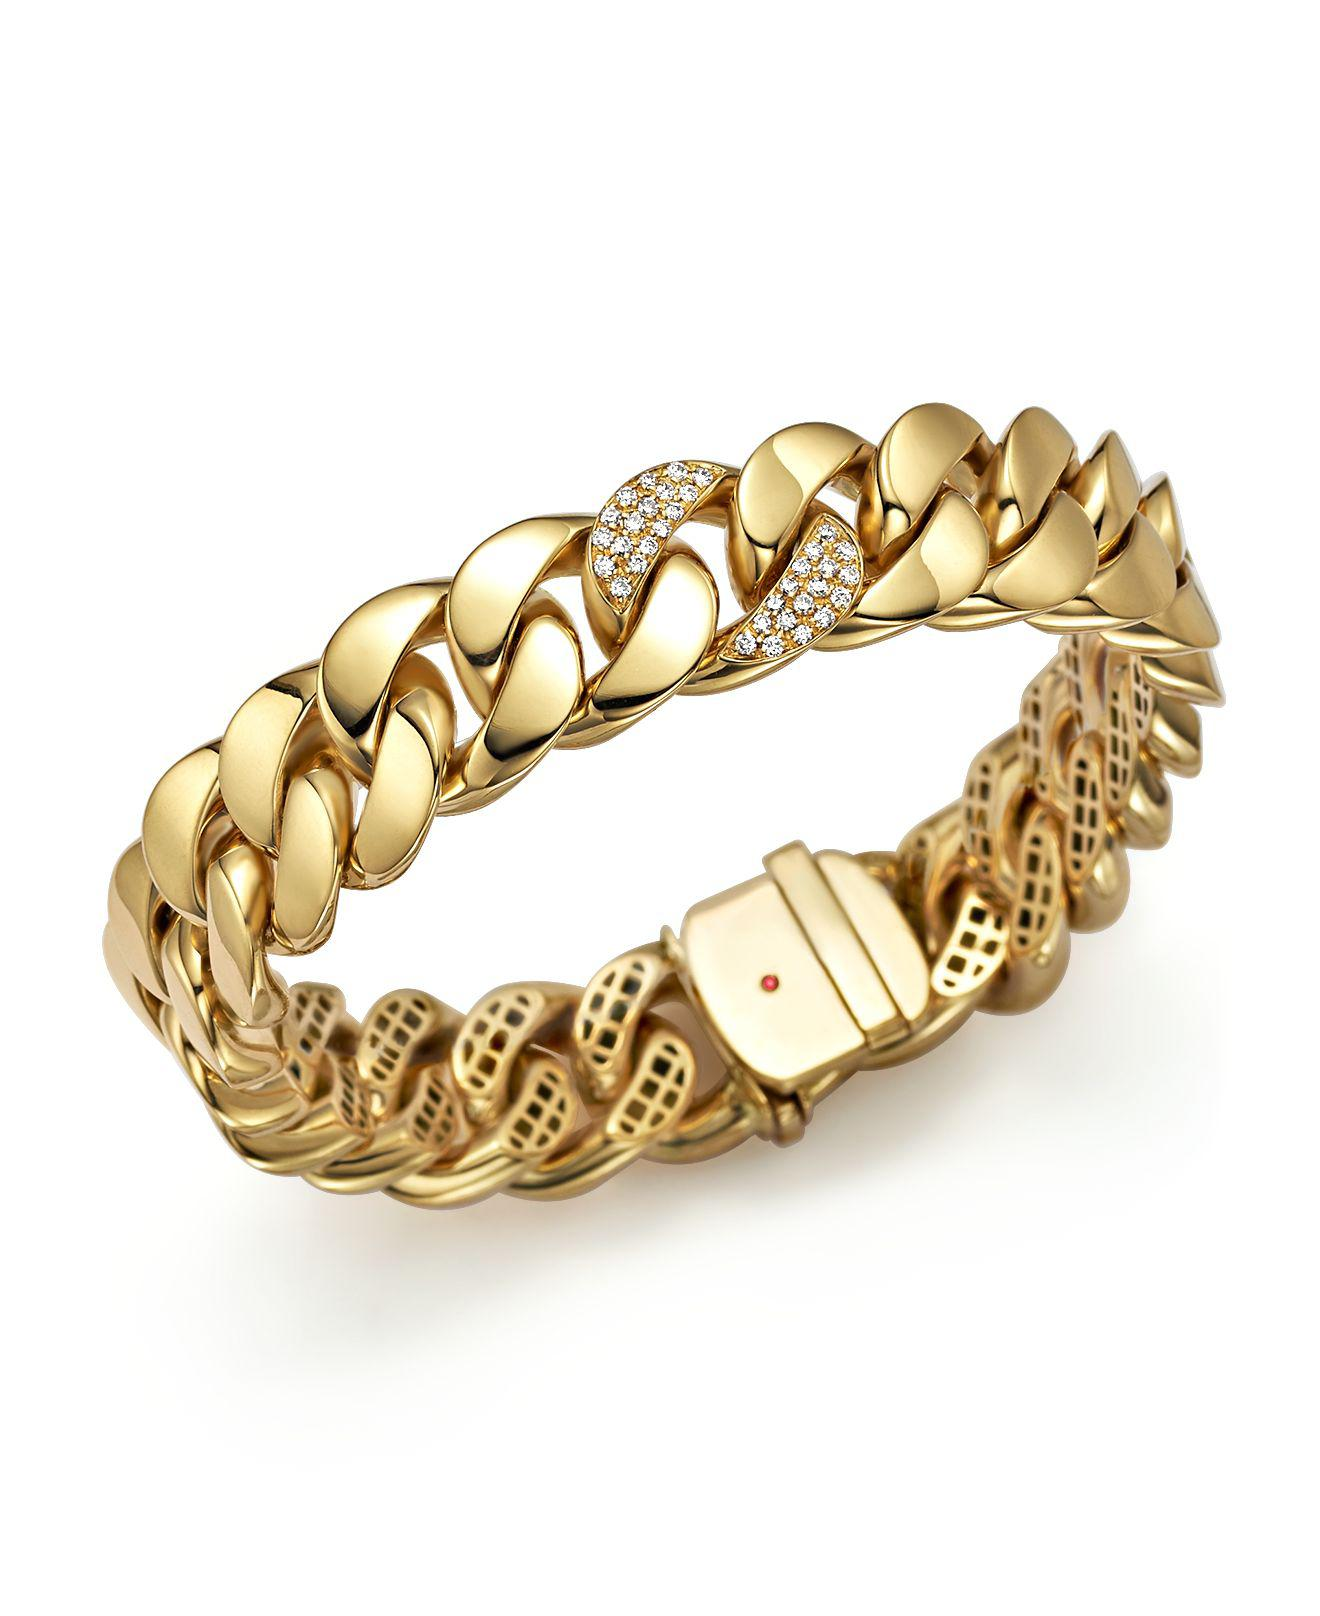 Roberto Coin 18k Gold Woven Bangle Bracelet w/ 2 Diamond Stations KRHj93TqC